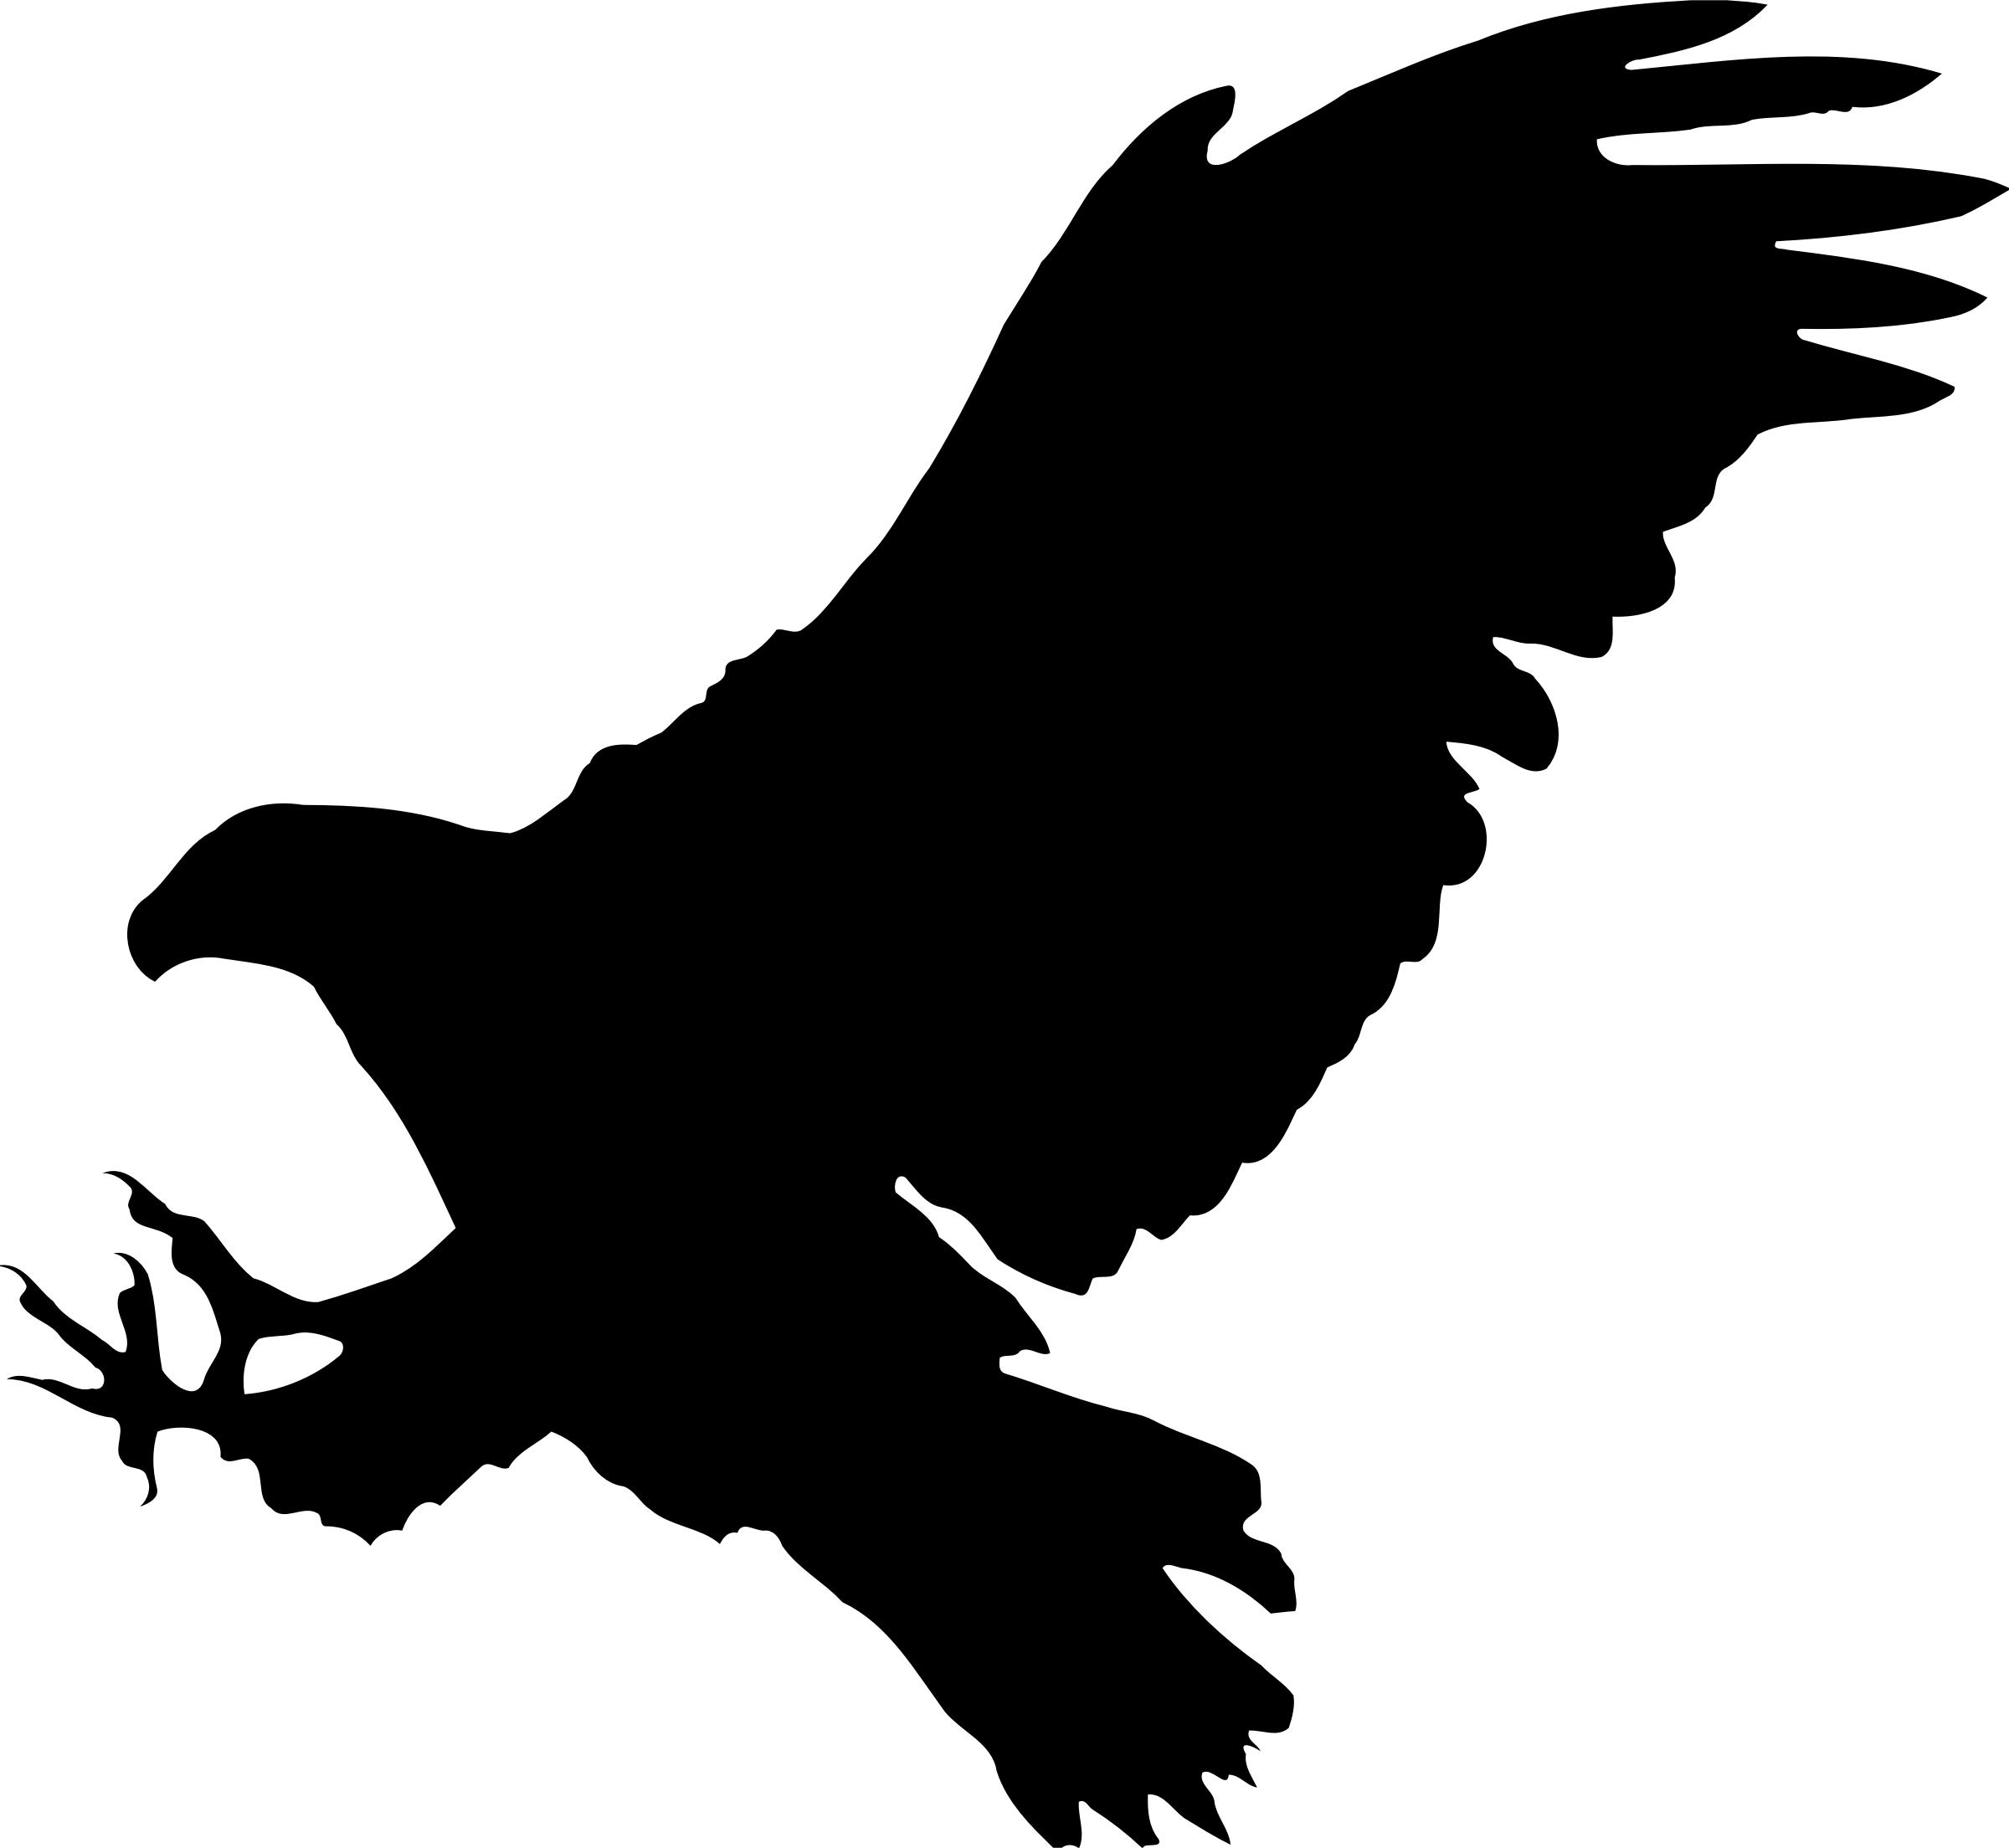 eagle silhouette bald eagle silhouette pattern at getdrawings free download eagle silhouette